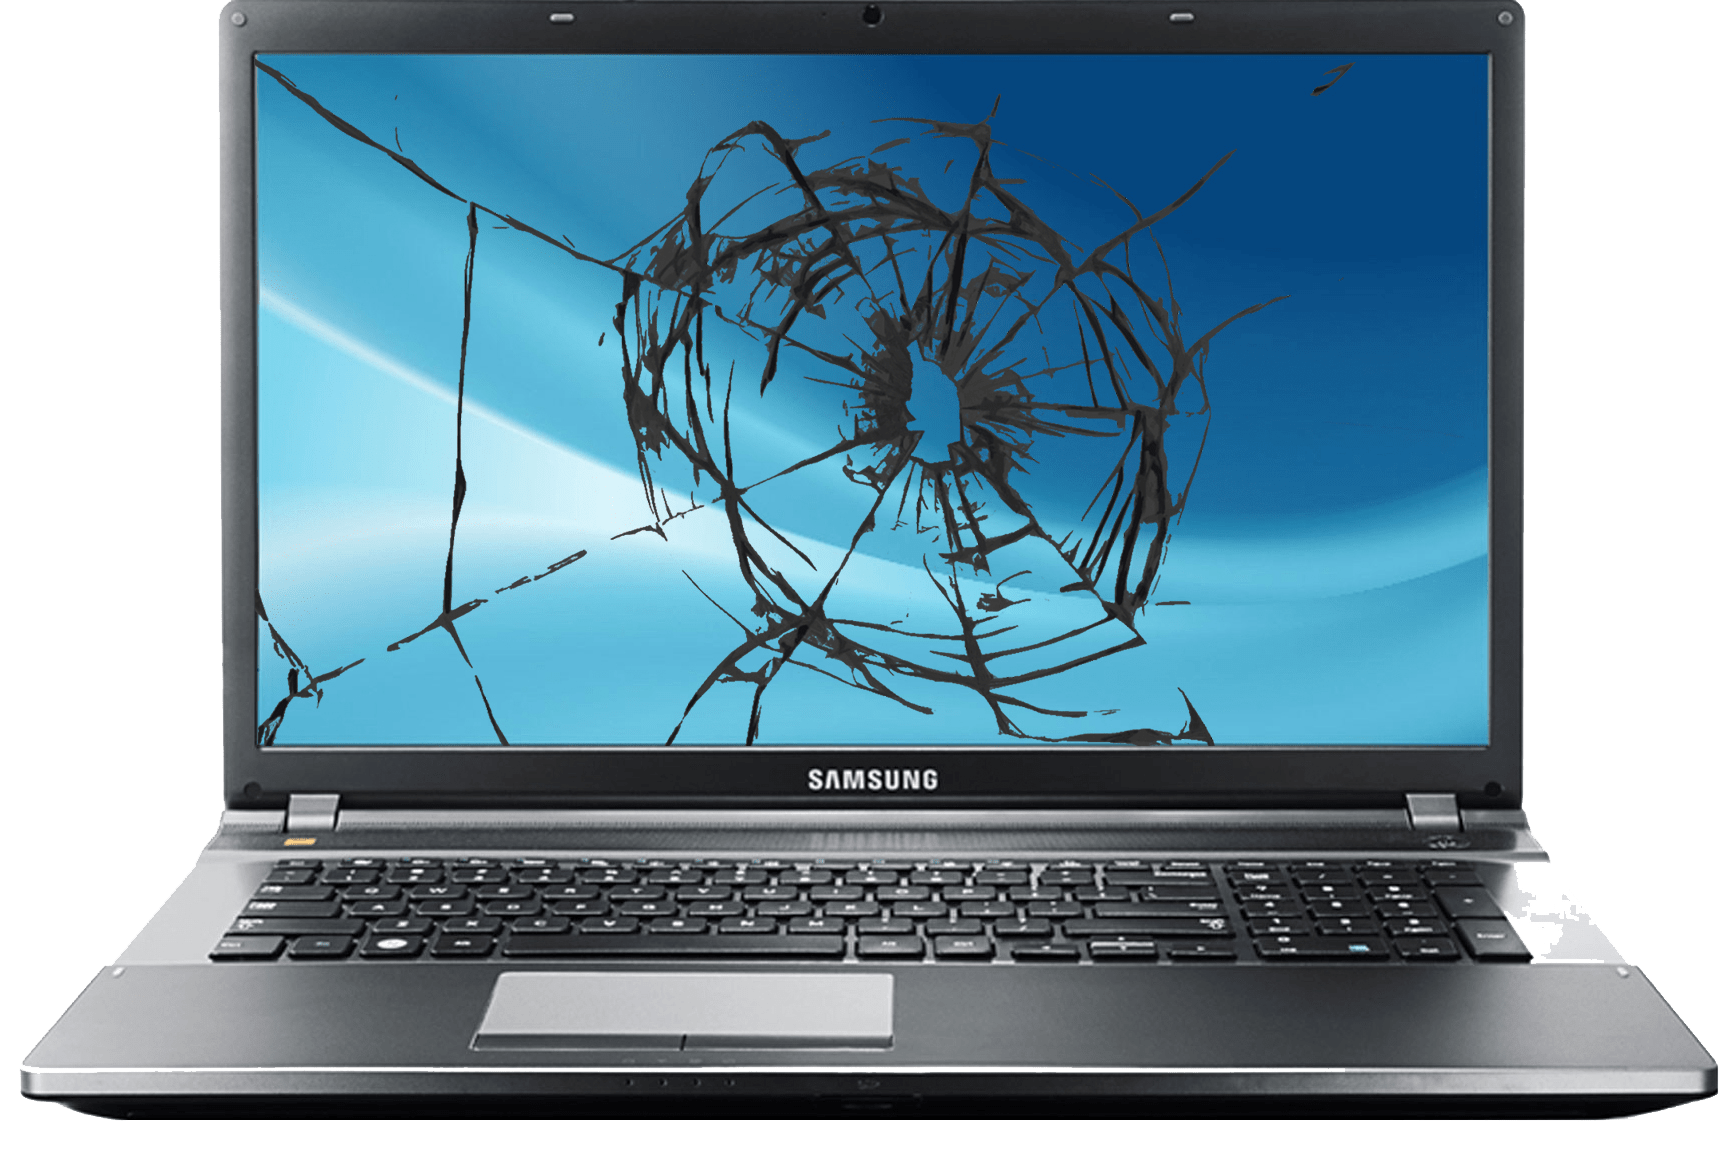 Damaged Laptop Screen It Happens Iknowrepairs Is Here To Help Get Your Laptop Quickly Repaired For Much Less Than You Thi Laptop Repair Top 10 Laptops Laptop